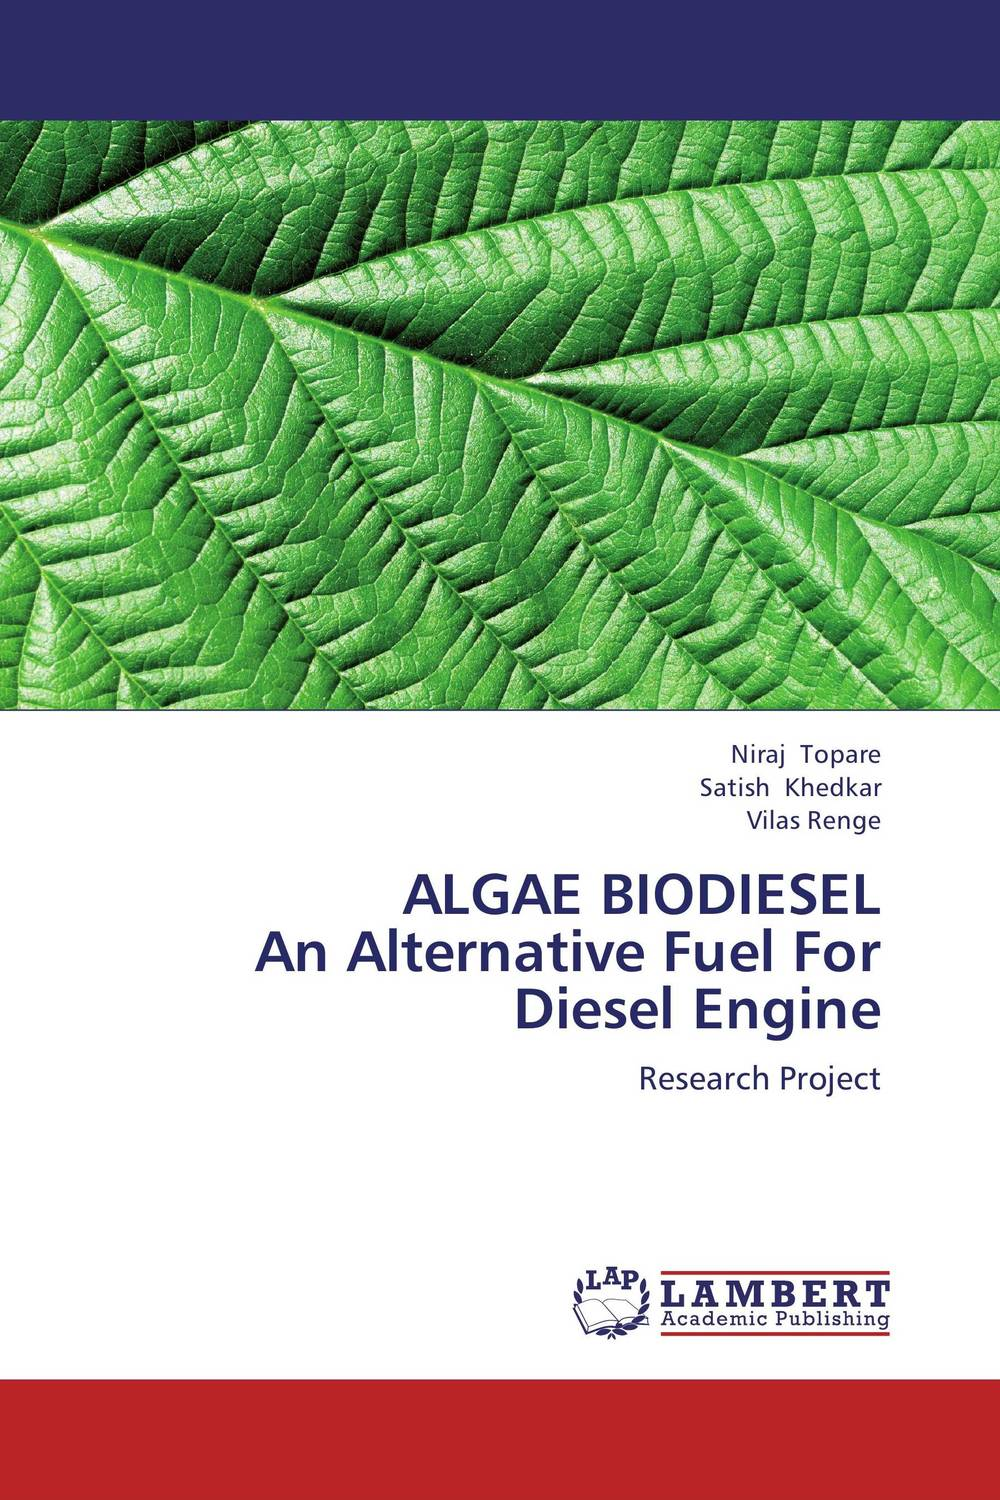 ALGAE BIODIESEL  An Alternative Fuel For Diesel Engine biodiesel from algae